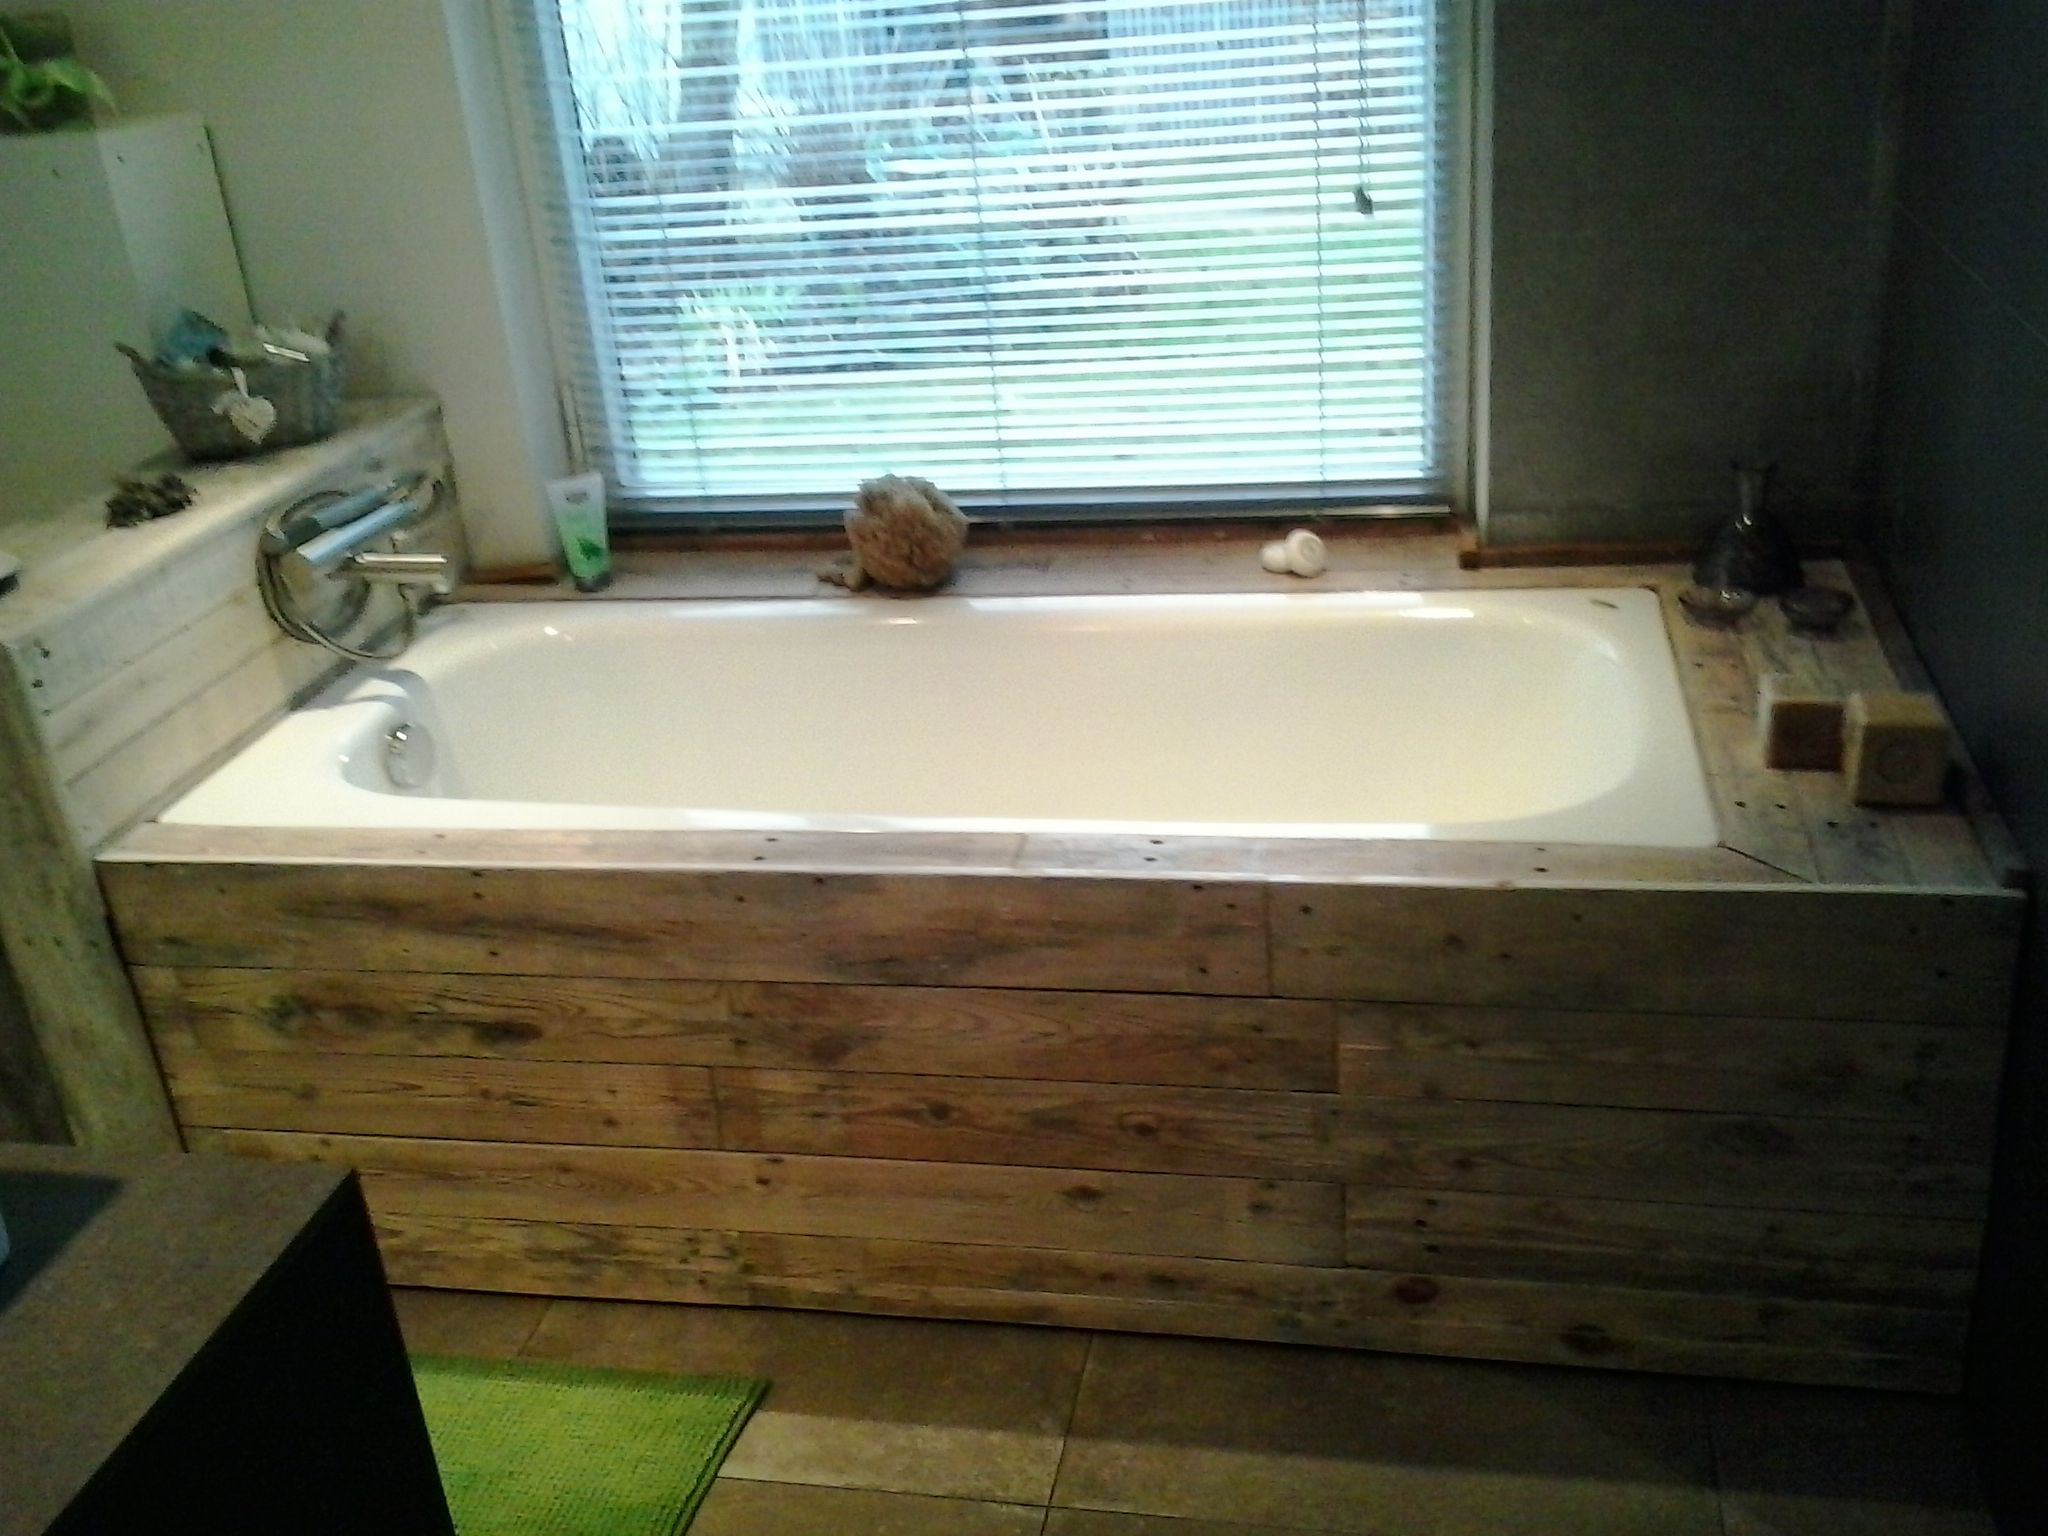 Palletwood used for incasing bathtub. fosset fixed on low wall used ...